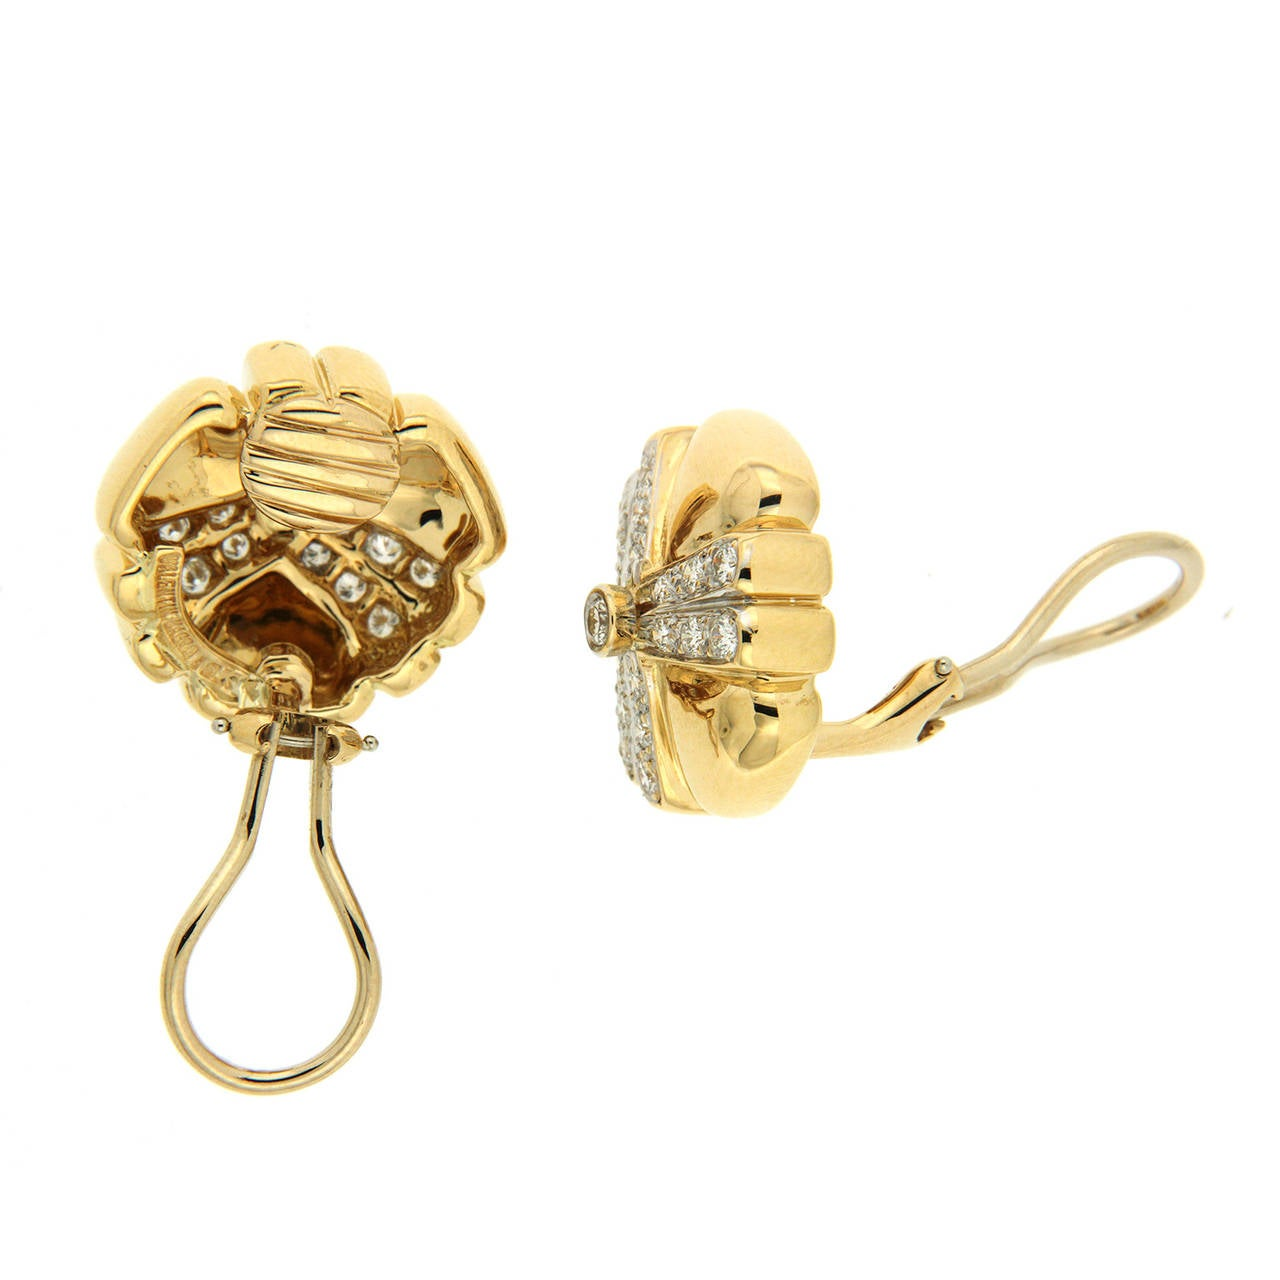 Pave diamond gold mercedes earrings for sale at 1stdibs for Mercedes benz 18k gold ring